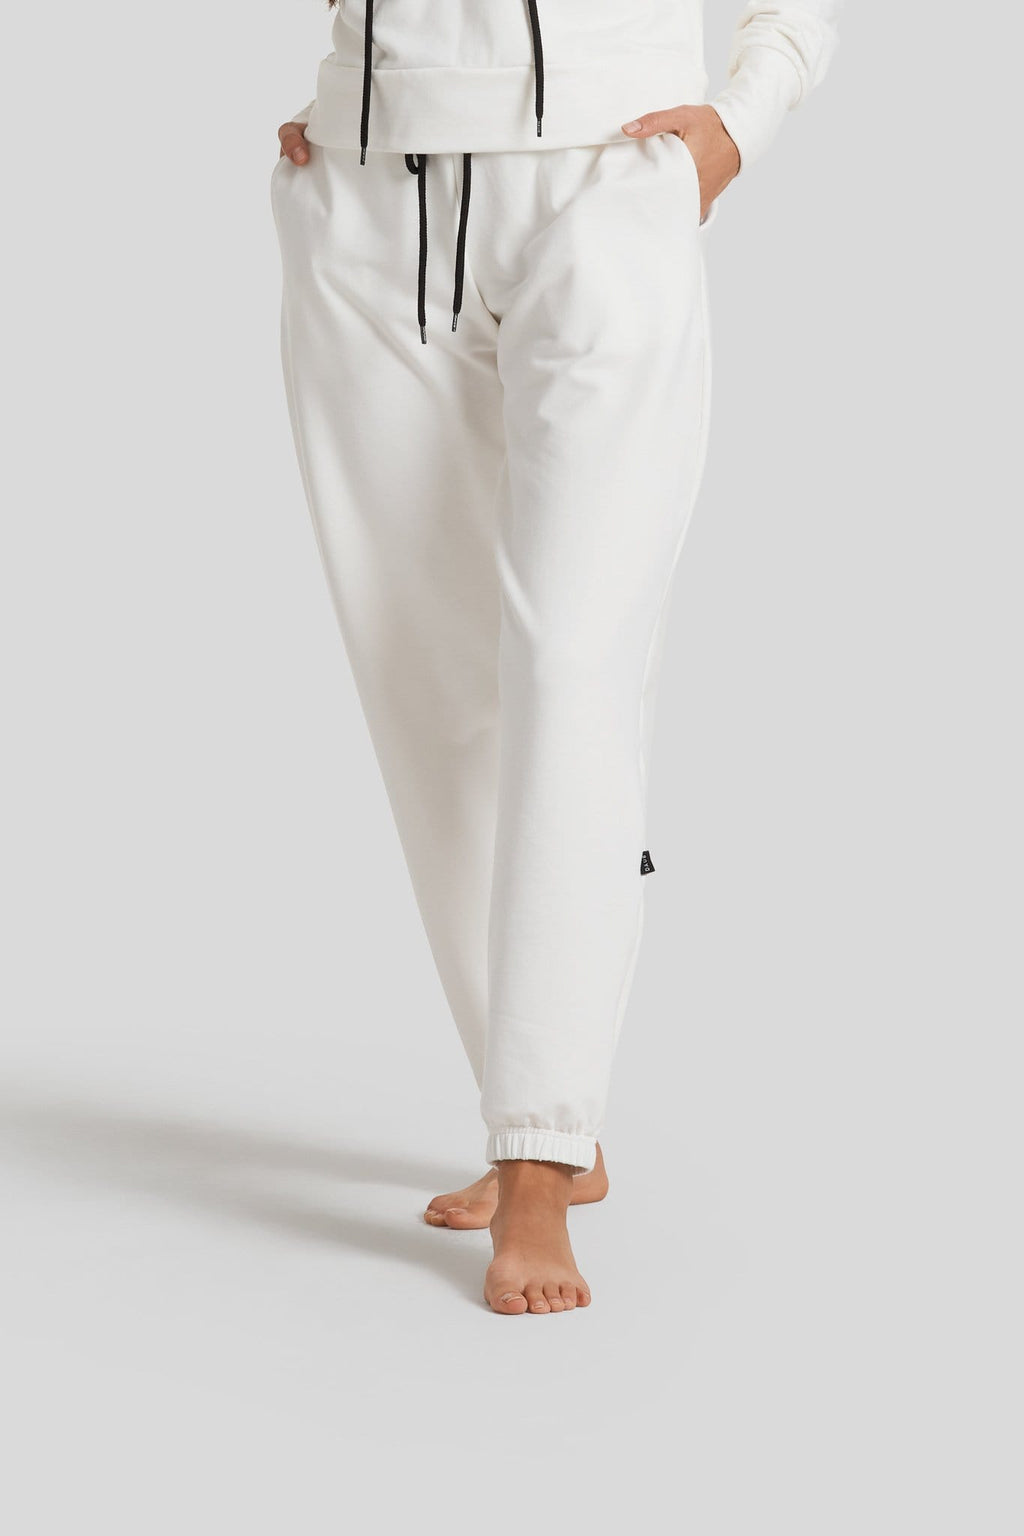 A woman's legs are shown wearing ivory colored sweatpants with a black drawstring